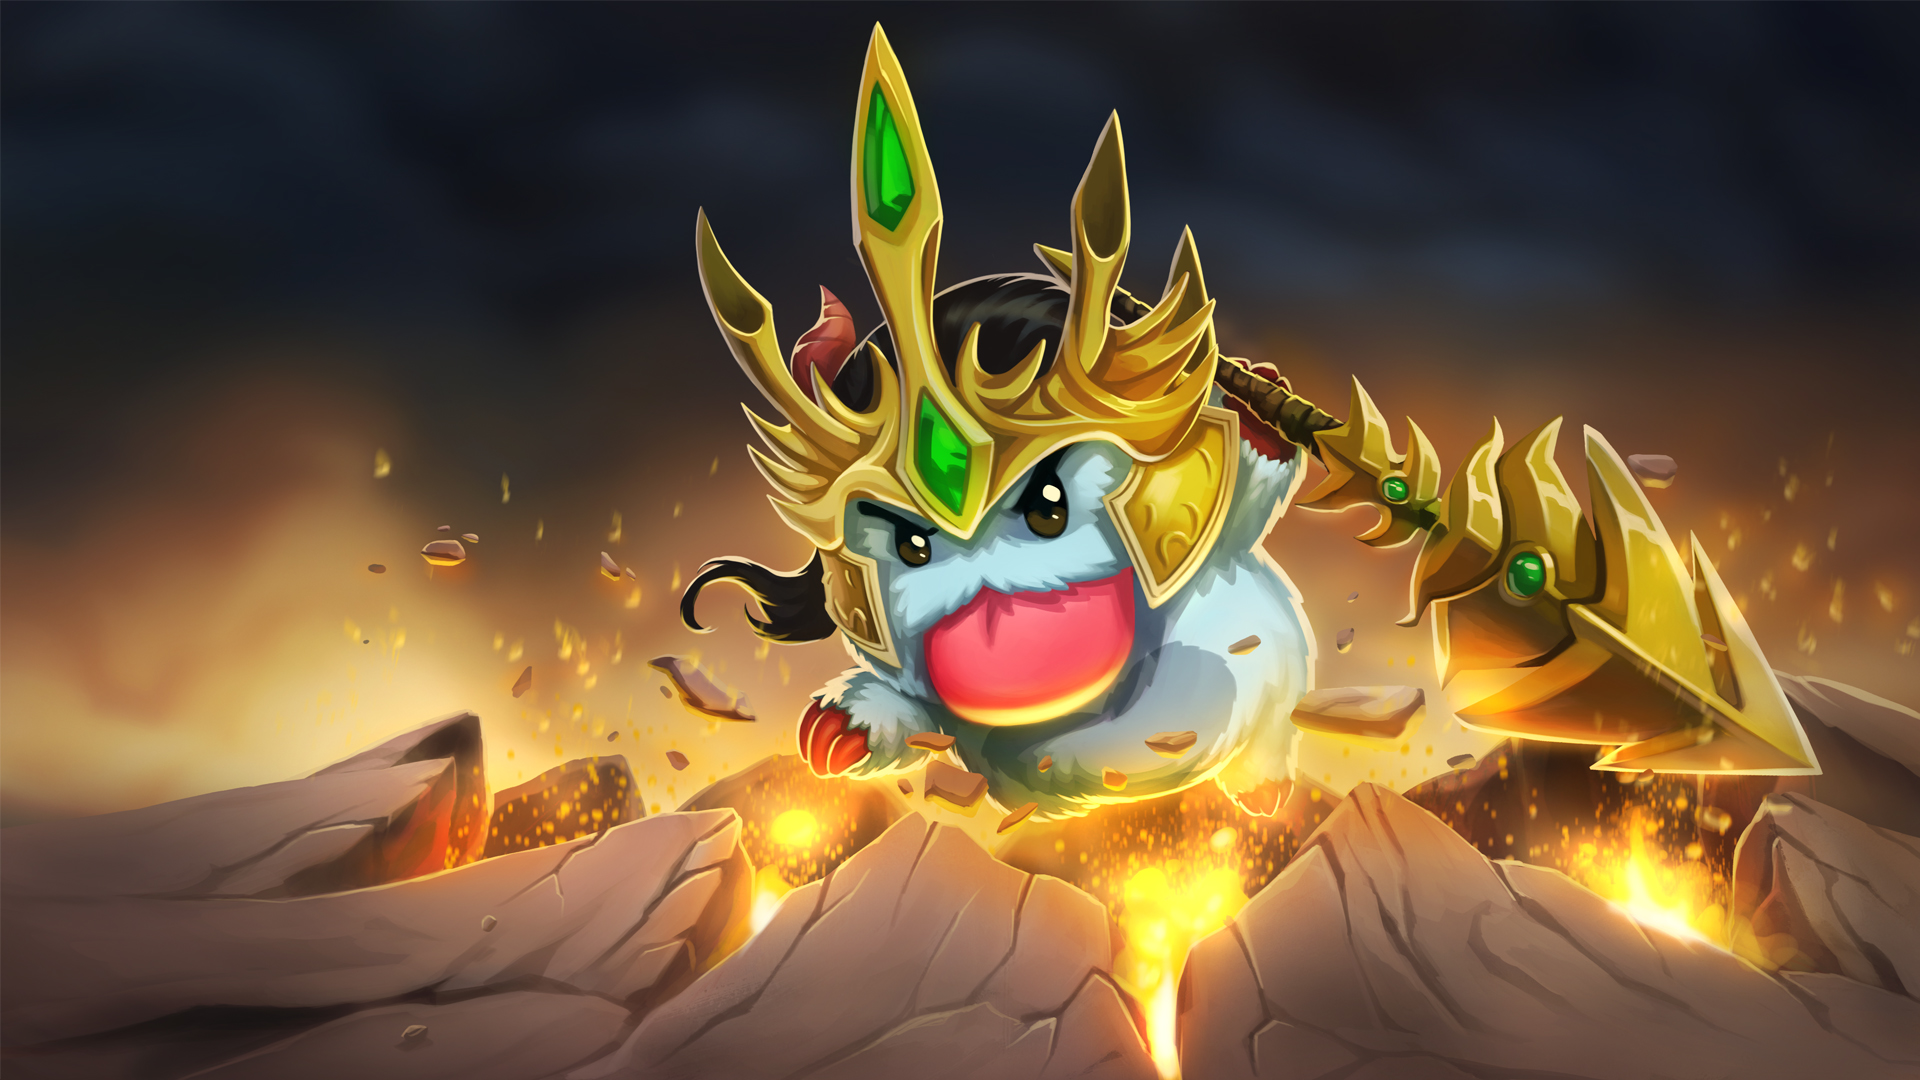 Jarvan IV Poro - Wallpapers HD